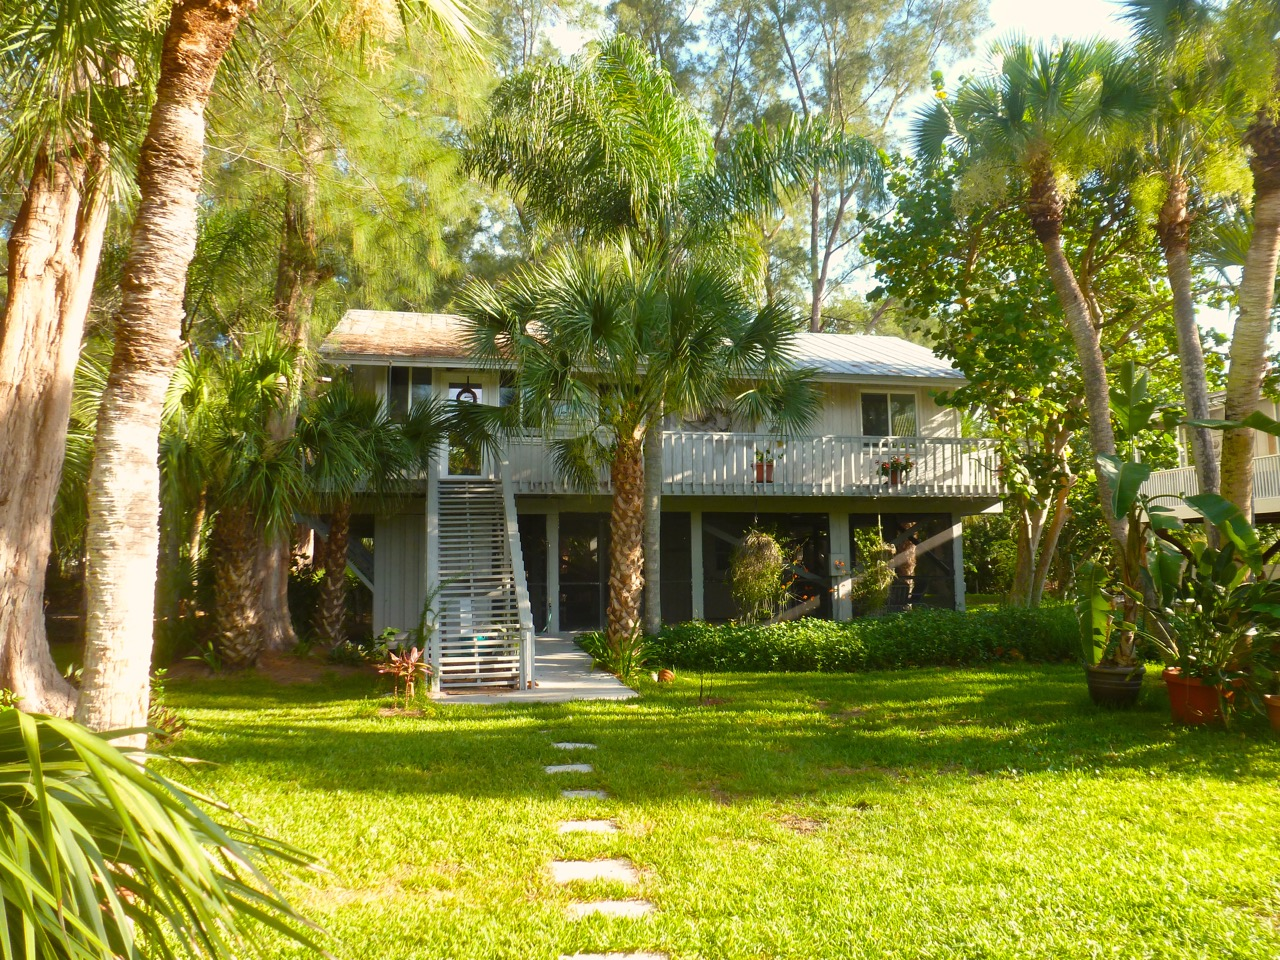 Coconut Palm Cottage - 2-Bedroom, 1 BathKING BED AND QUEEN BED, SLEEPS 4